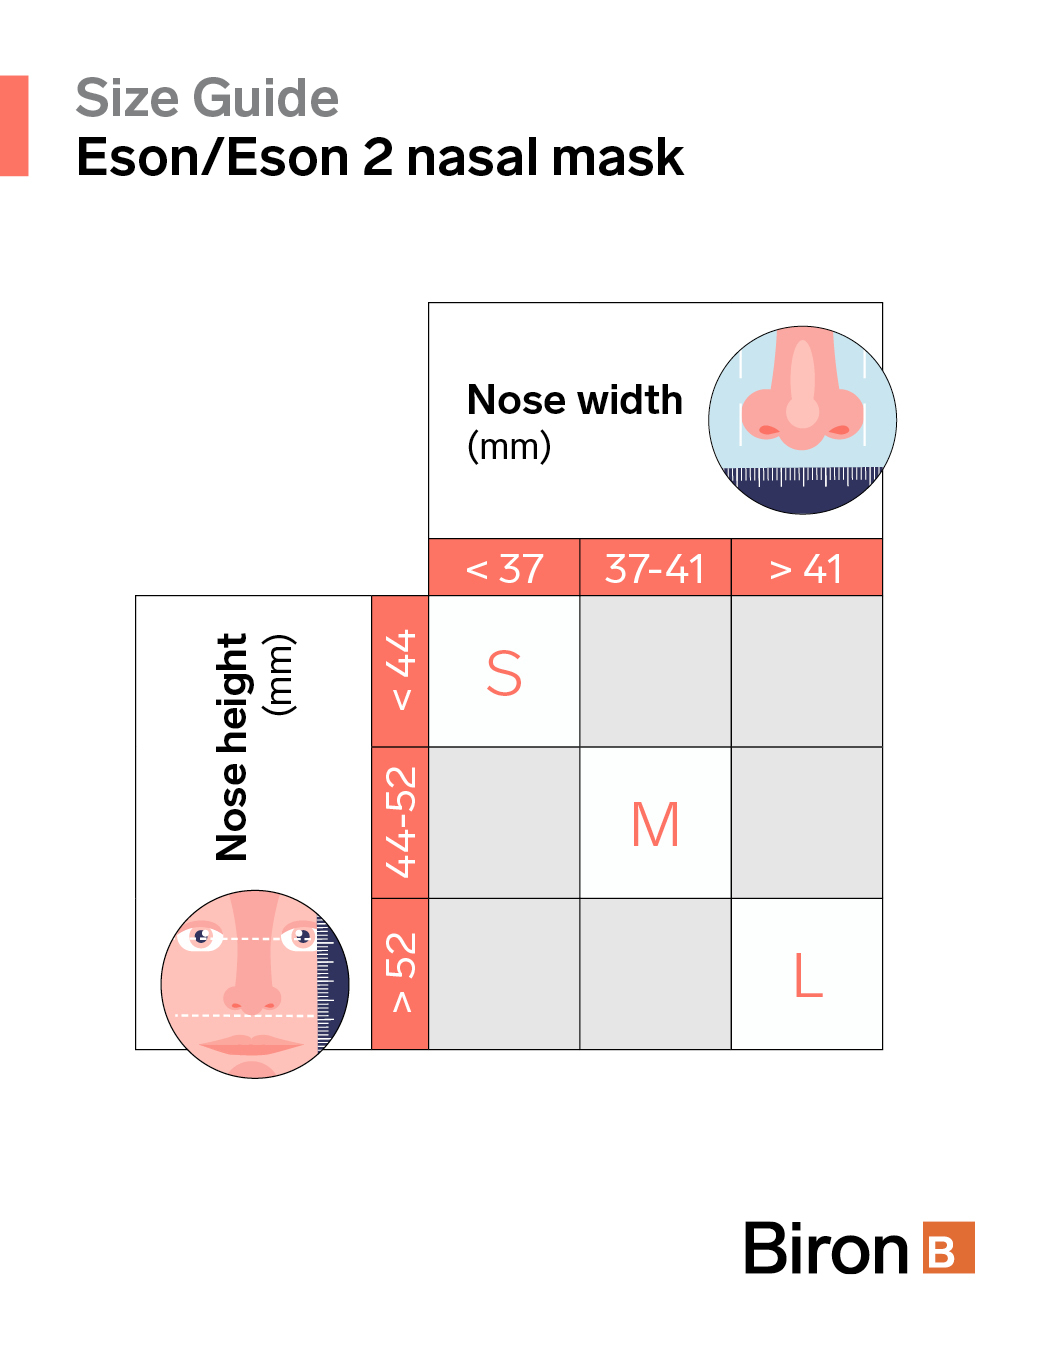 Size guide Eson 2 nasal mask